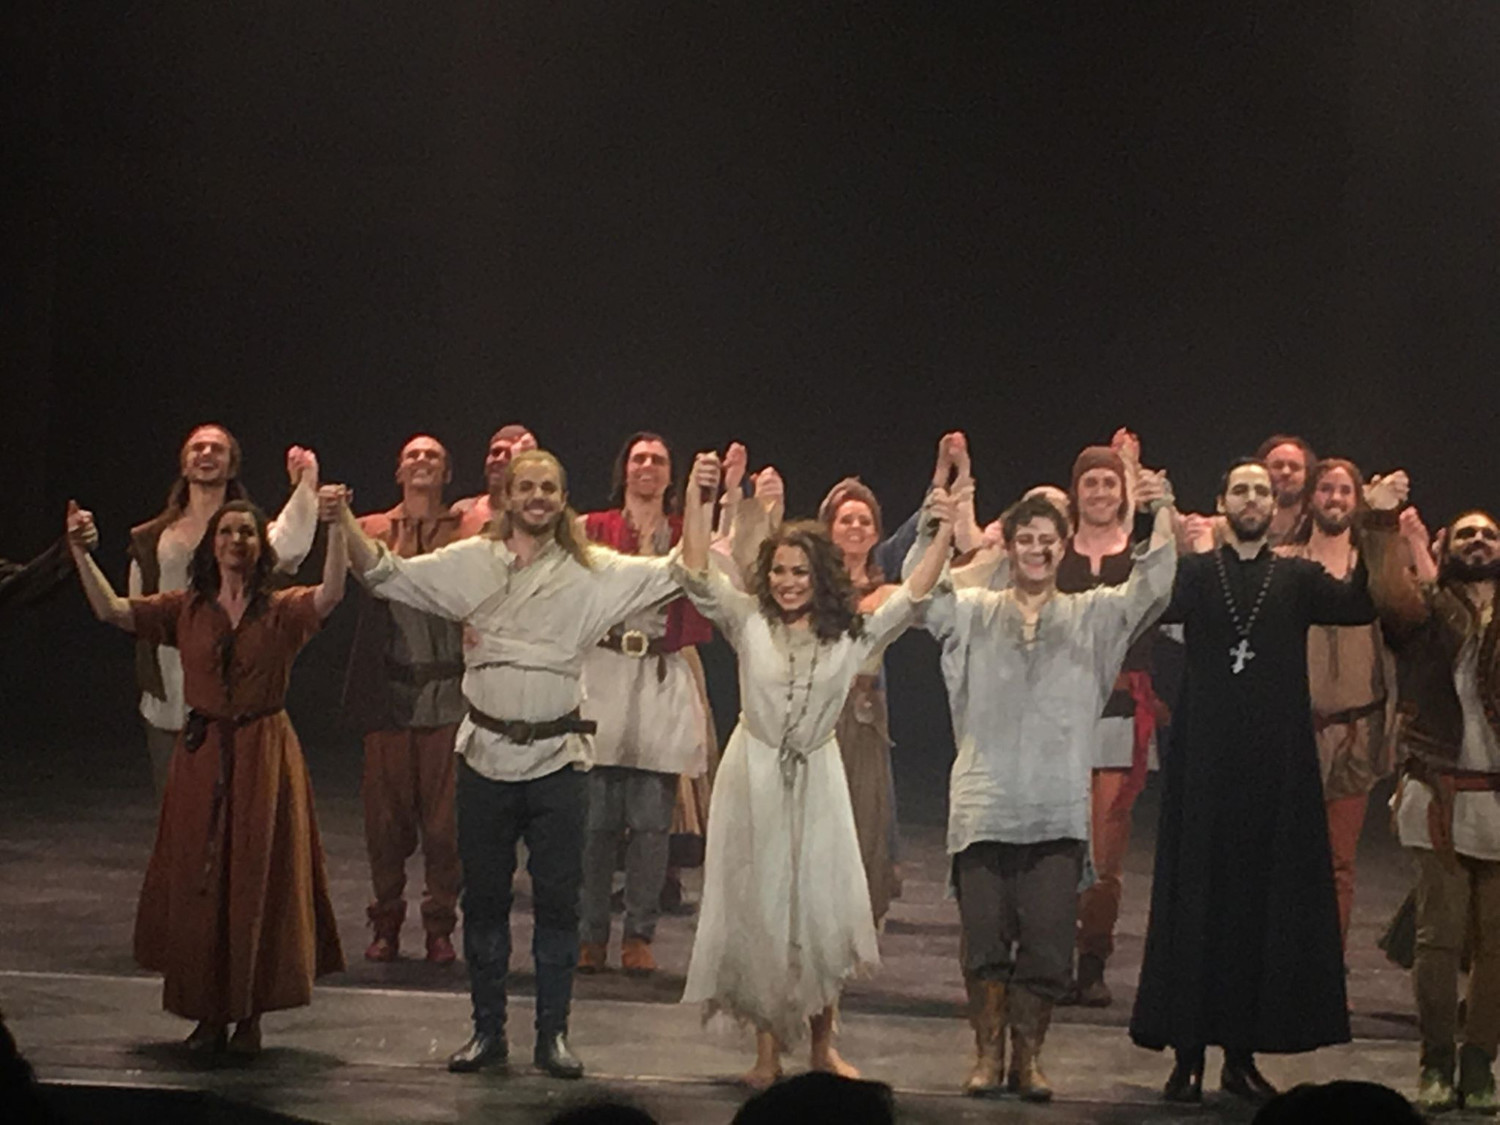 BWW Review: THE HUNCHBACK OF NOTRE DAME at Göteborgsoperan